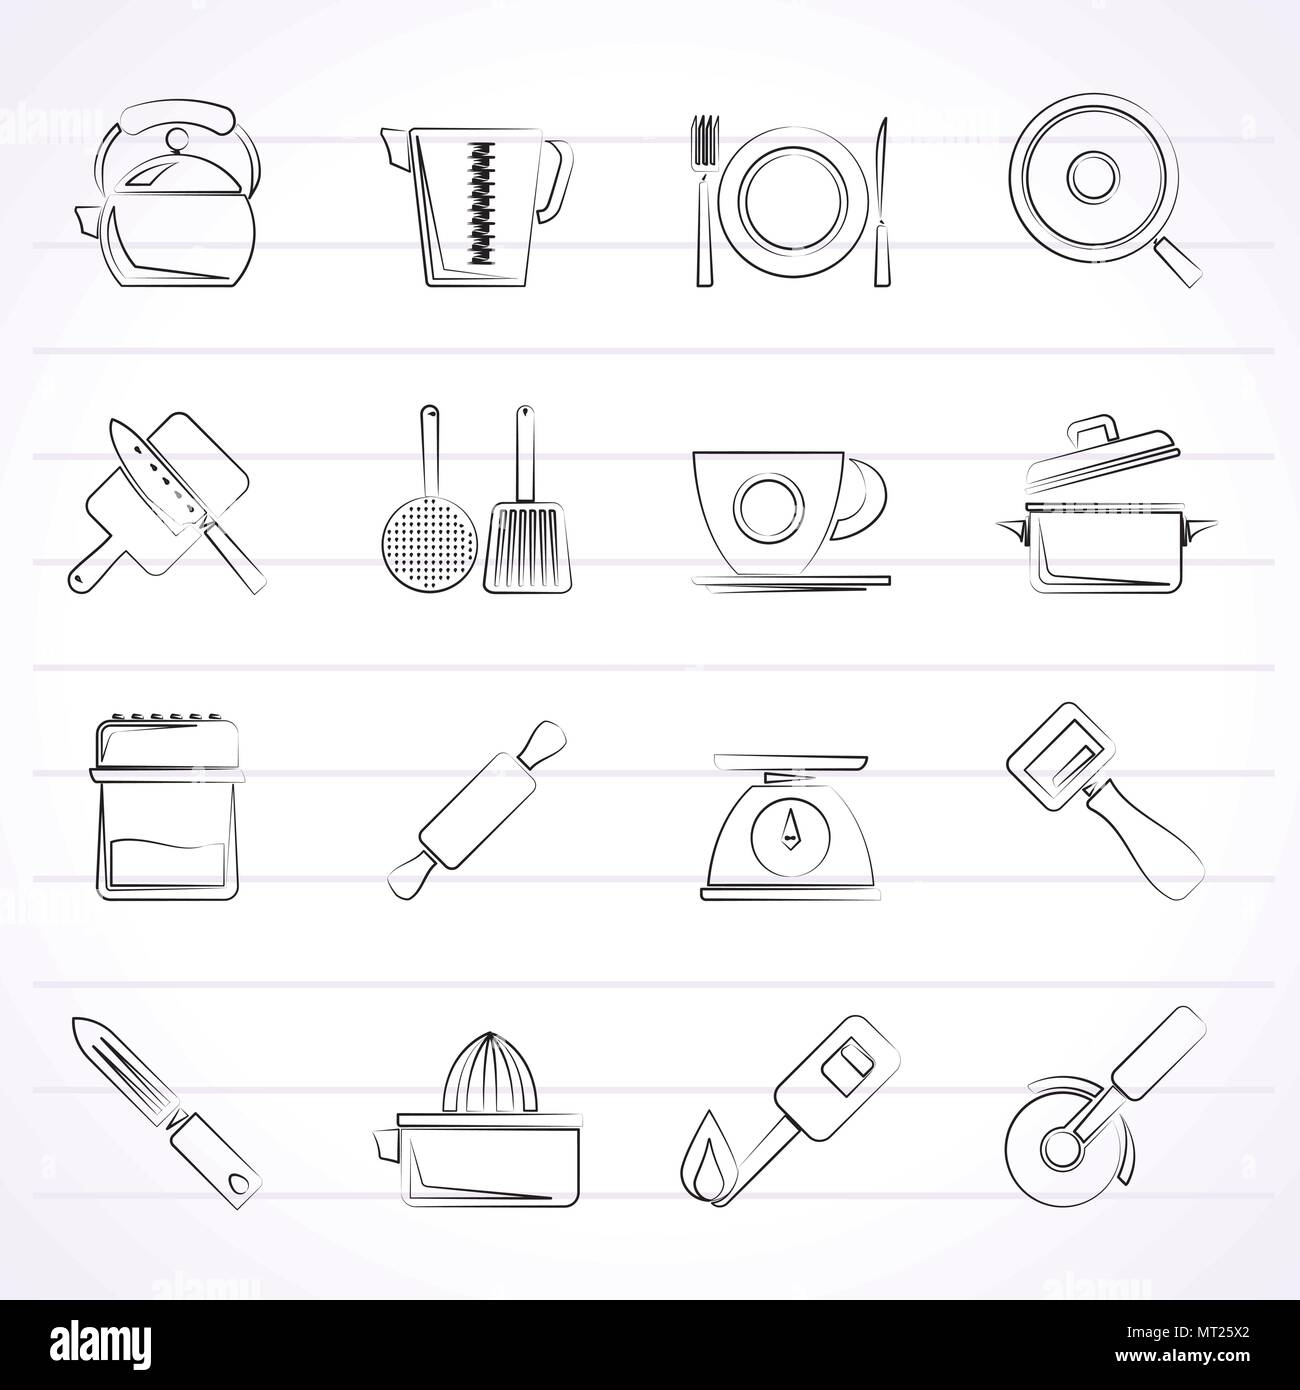 Kitchen gadgets and equipment icons - vector icon set - Stock Image